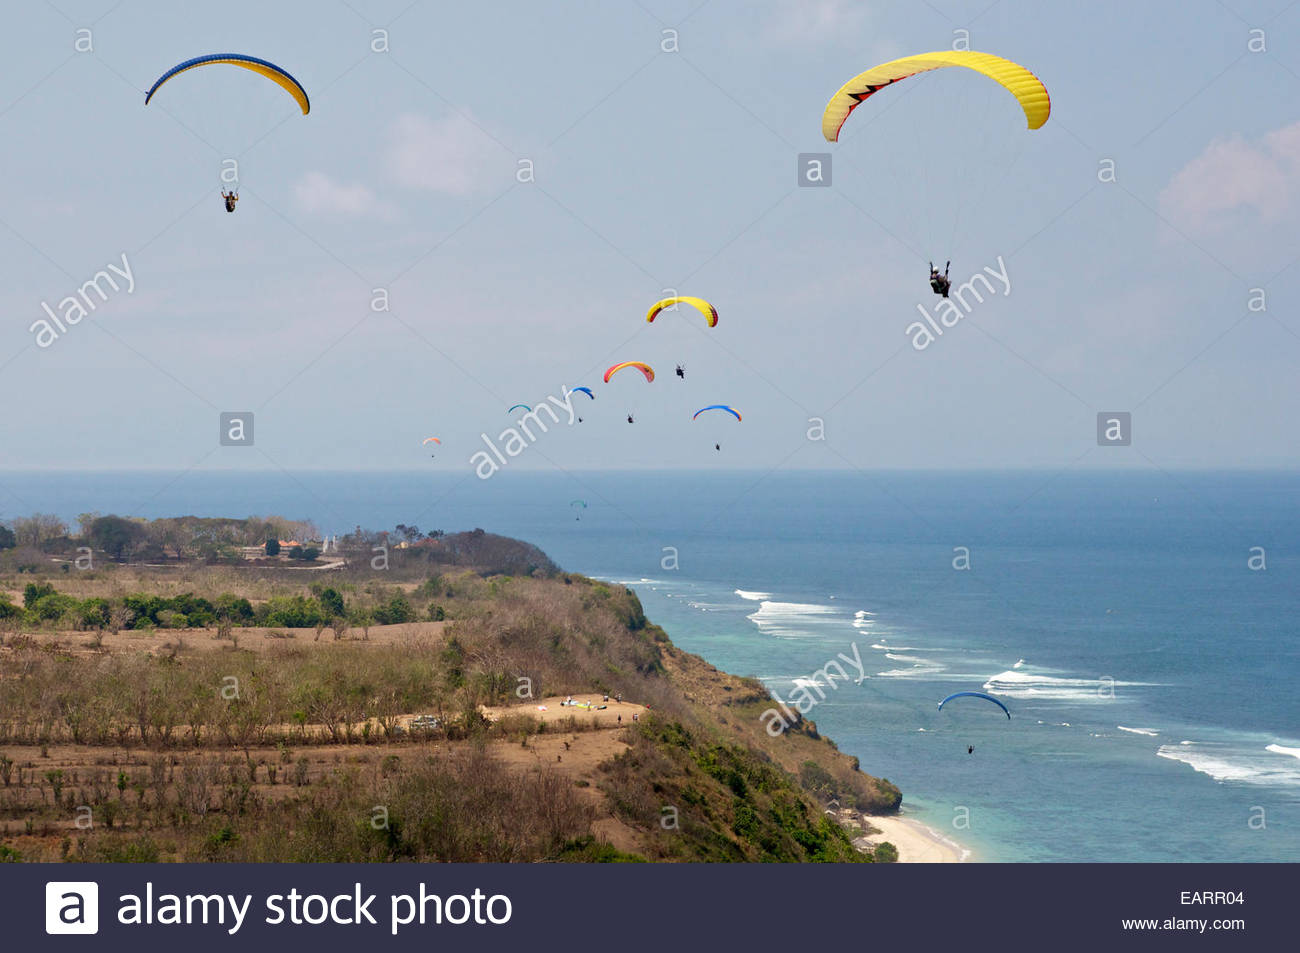 Paragliders soar Bali's coastline in afternoon seabreeze conditions. - Stock Image